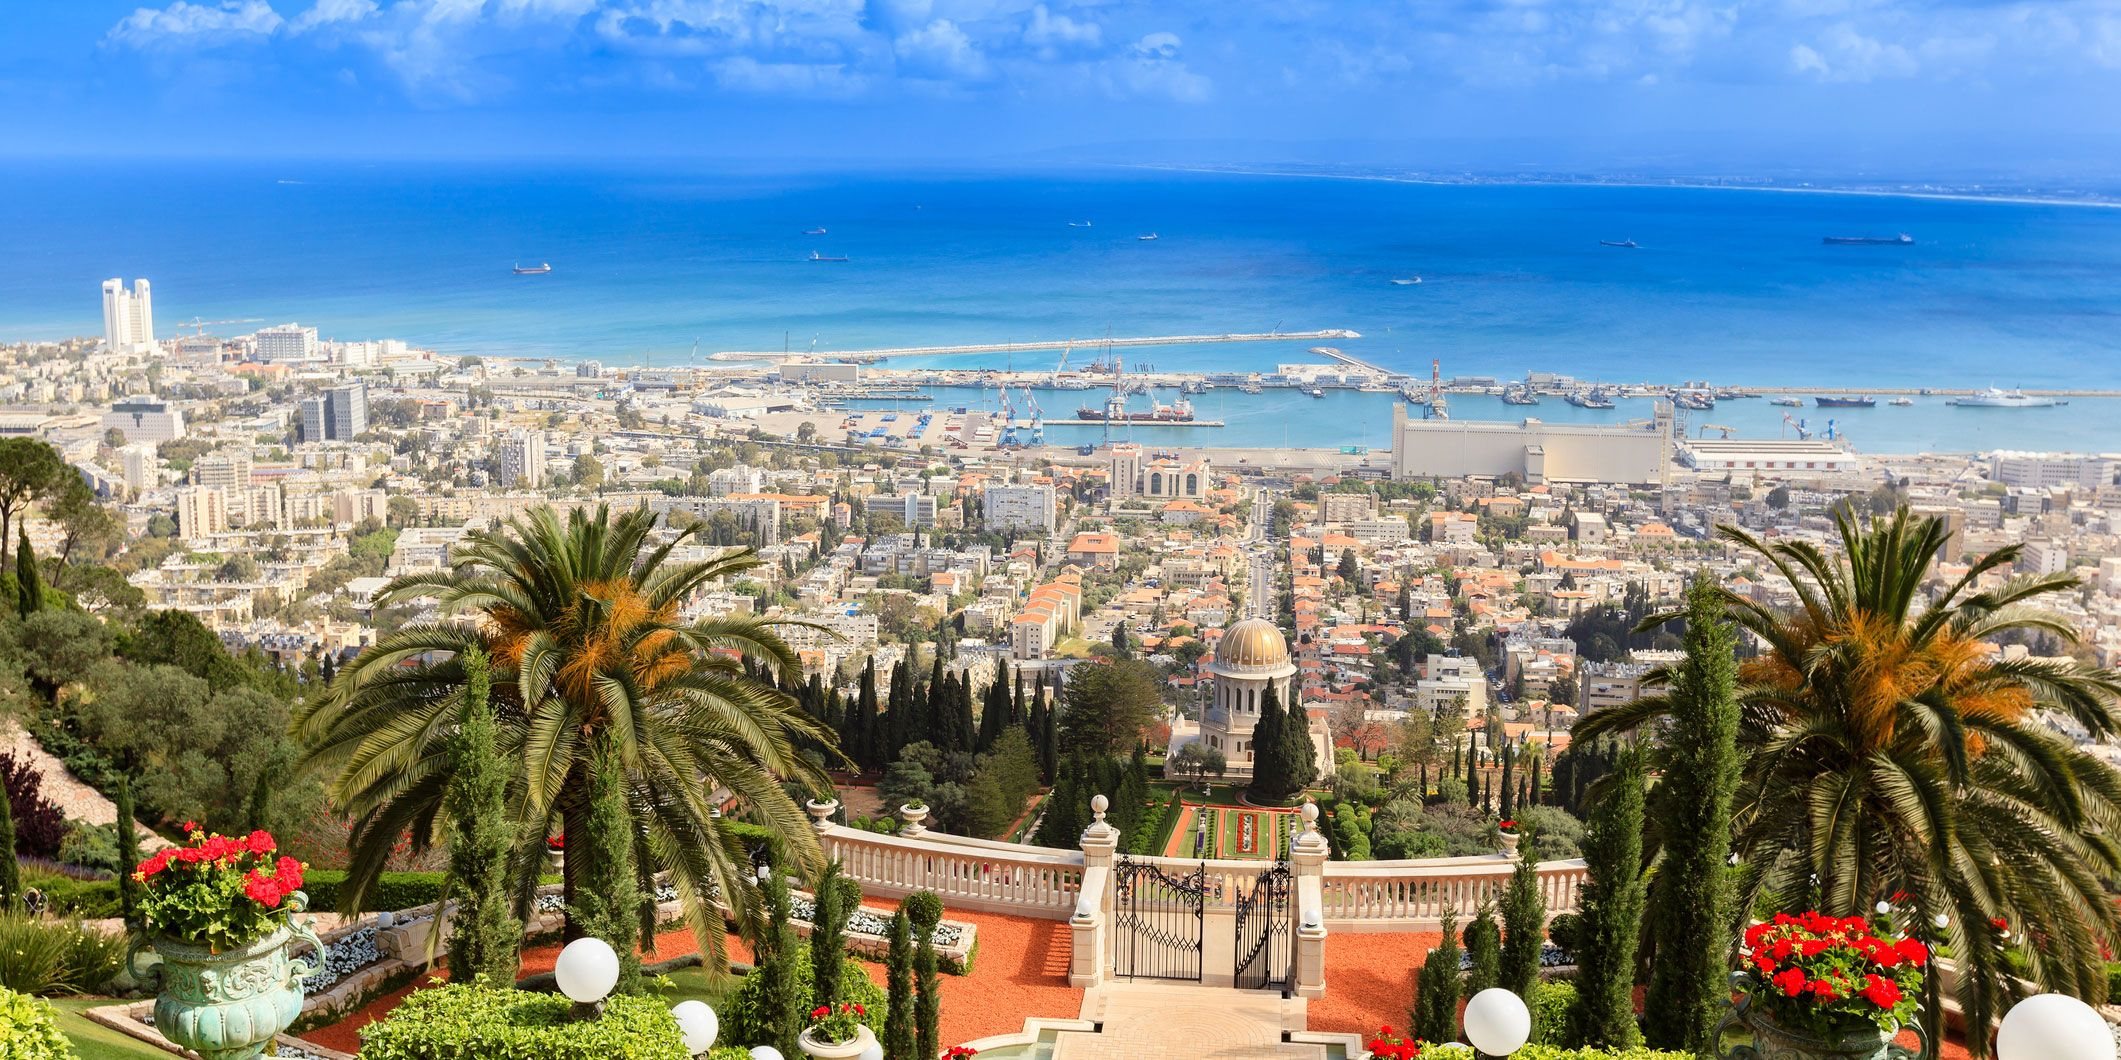 Israel travel guide: What to do in Jerusalem, Tel Aviv and Haifa